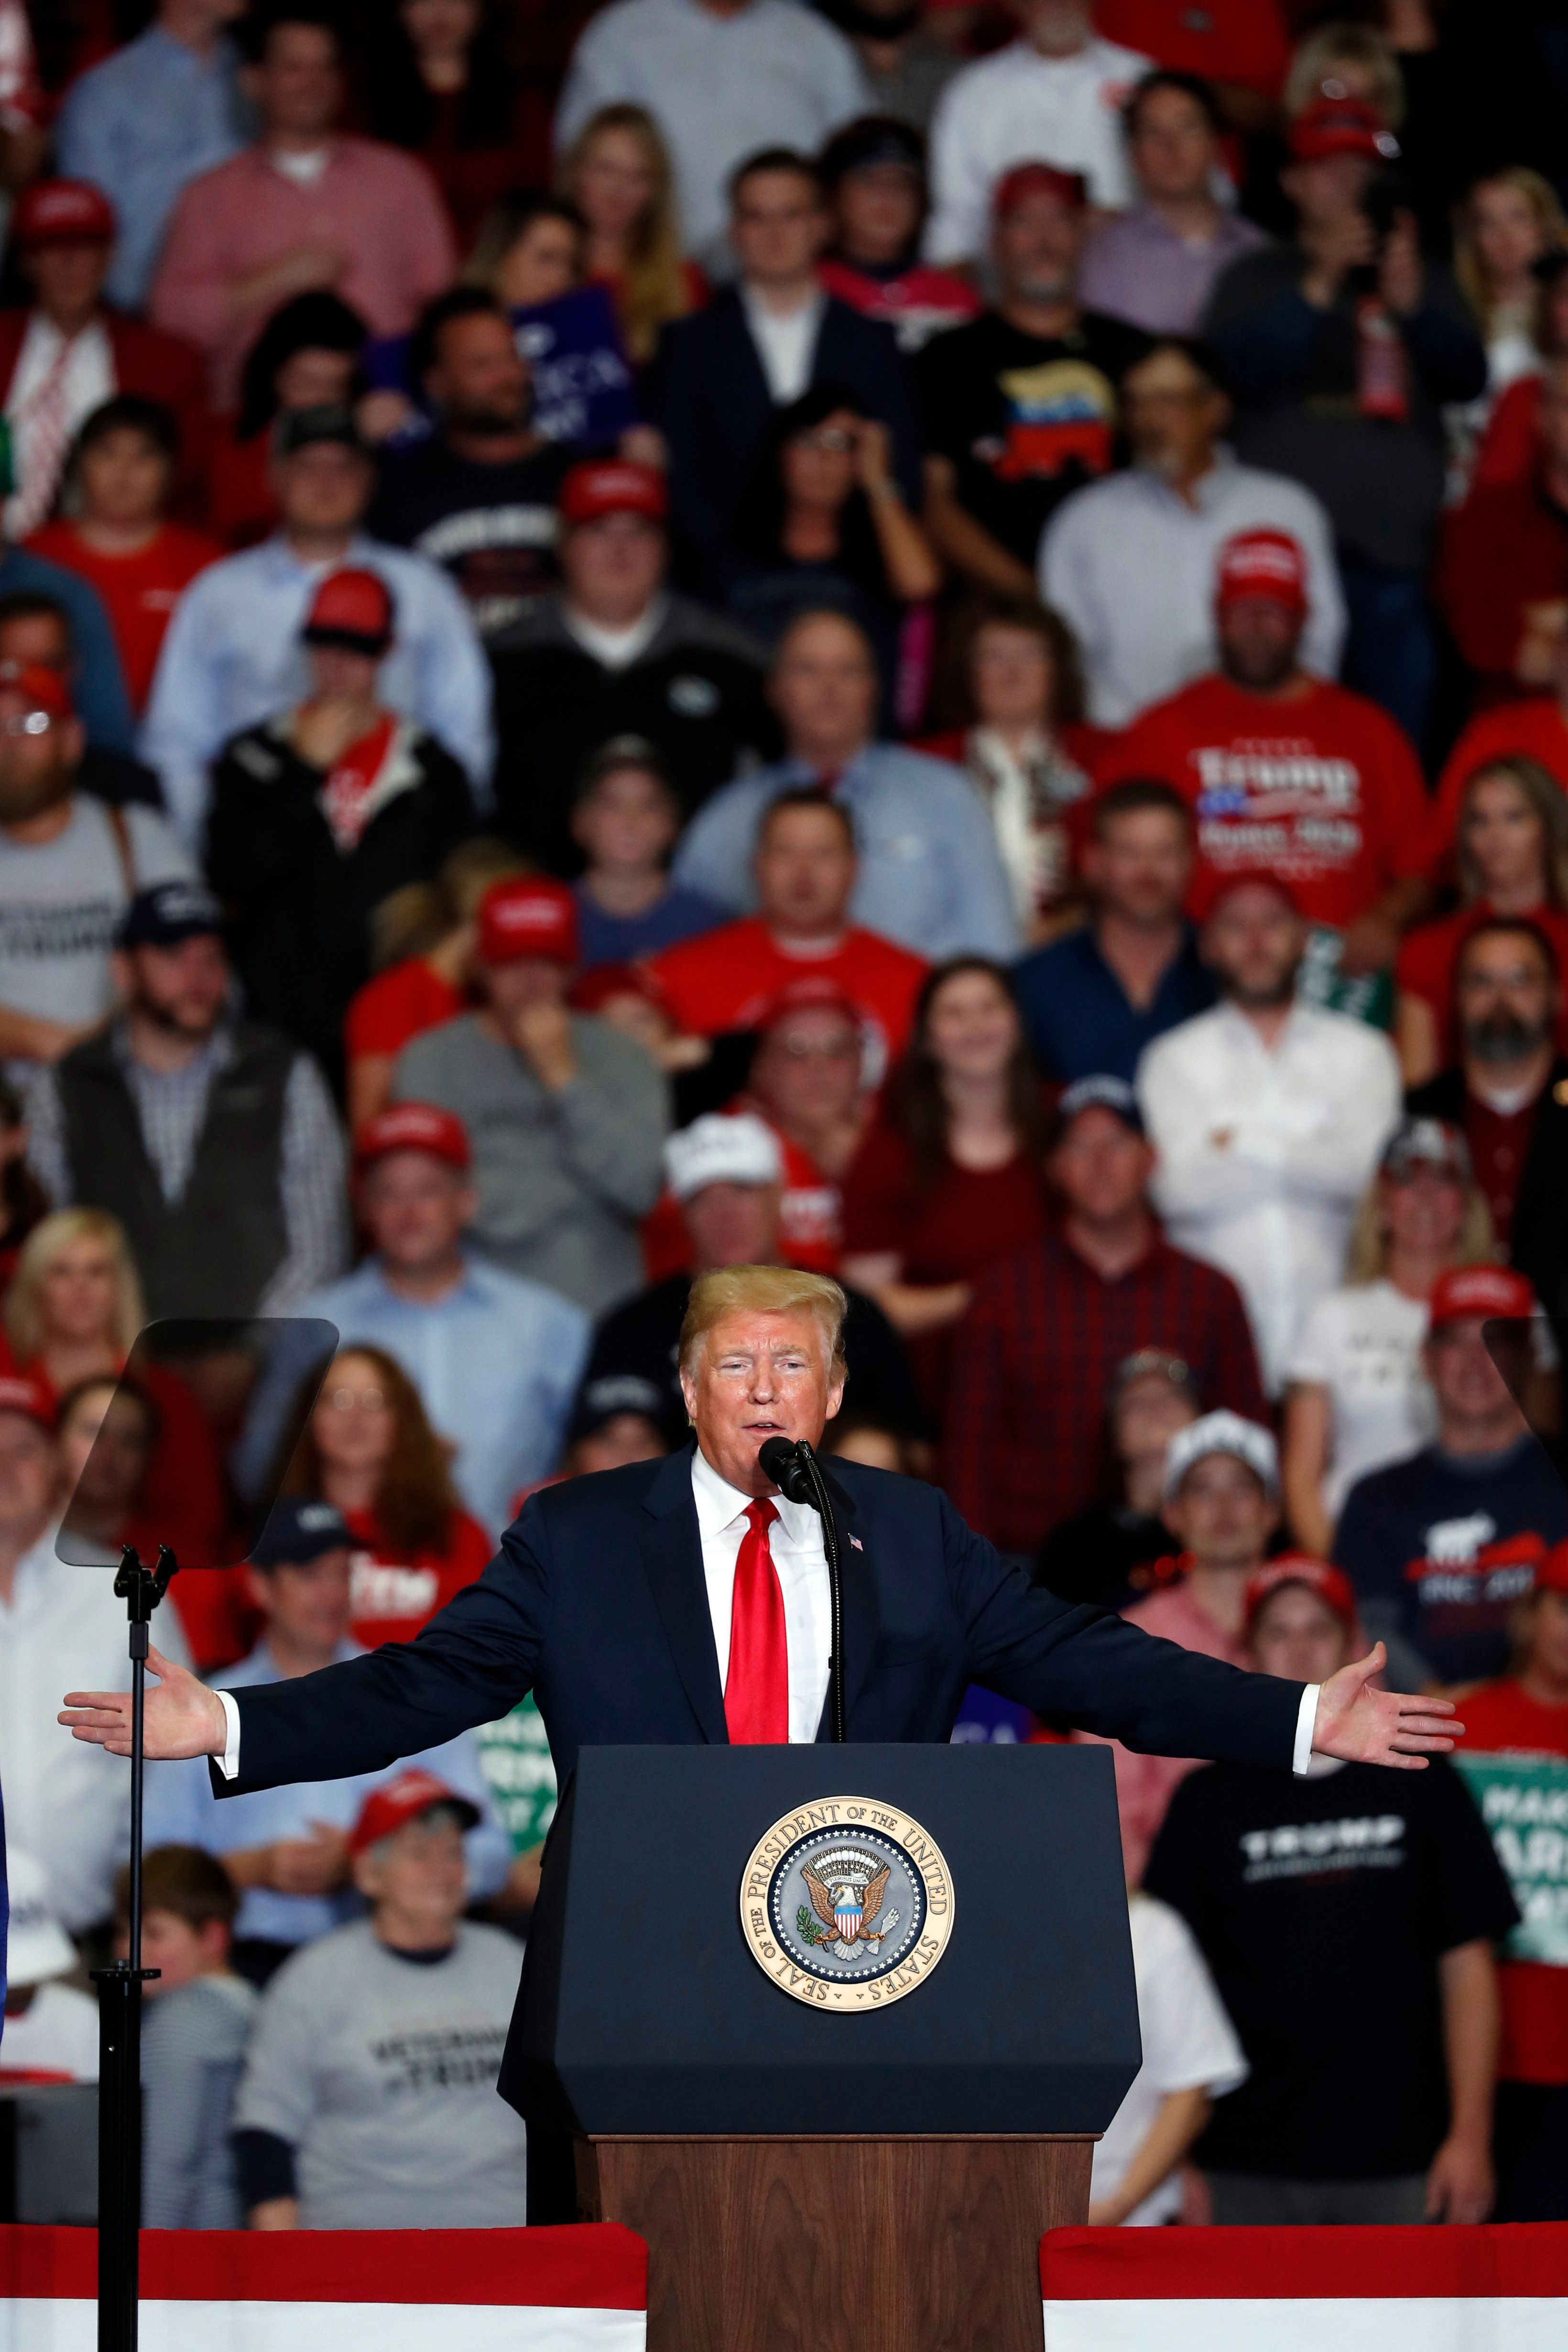 President Donald Trump speaks during a campaign rally Monday, Nov. 5, 2018, in Cape Girardeau, Mo. (AP Photo/Jeff Roberson)